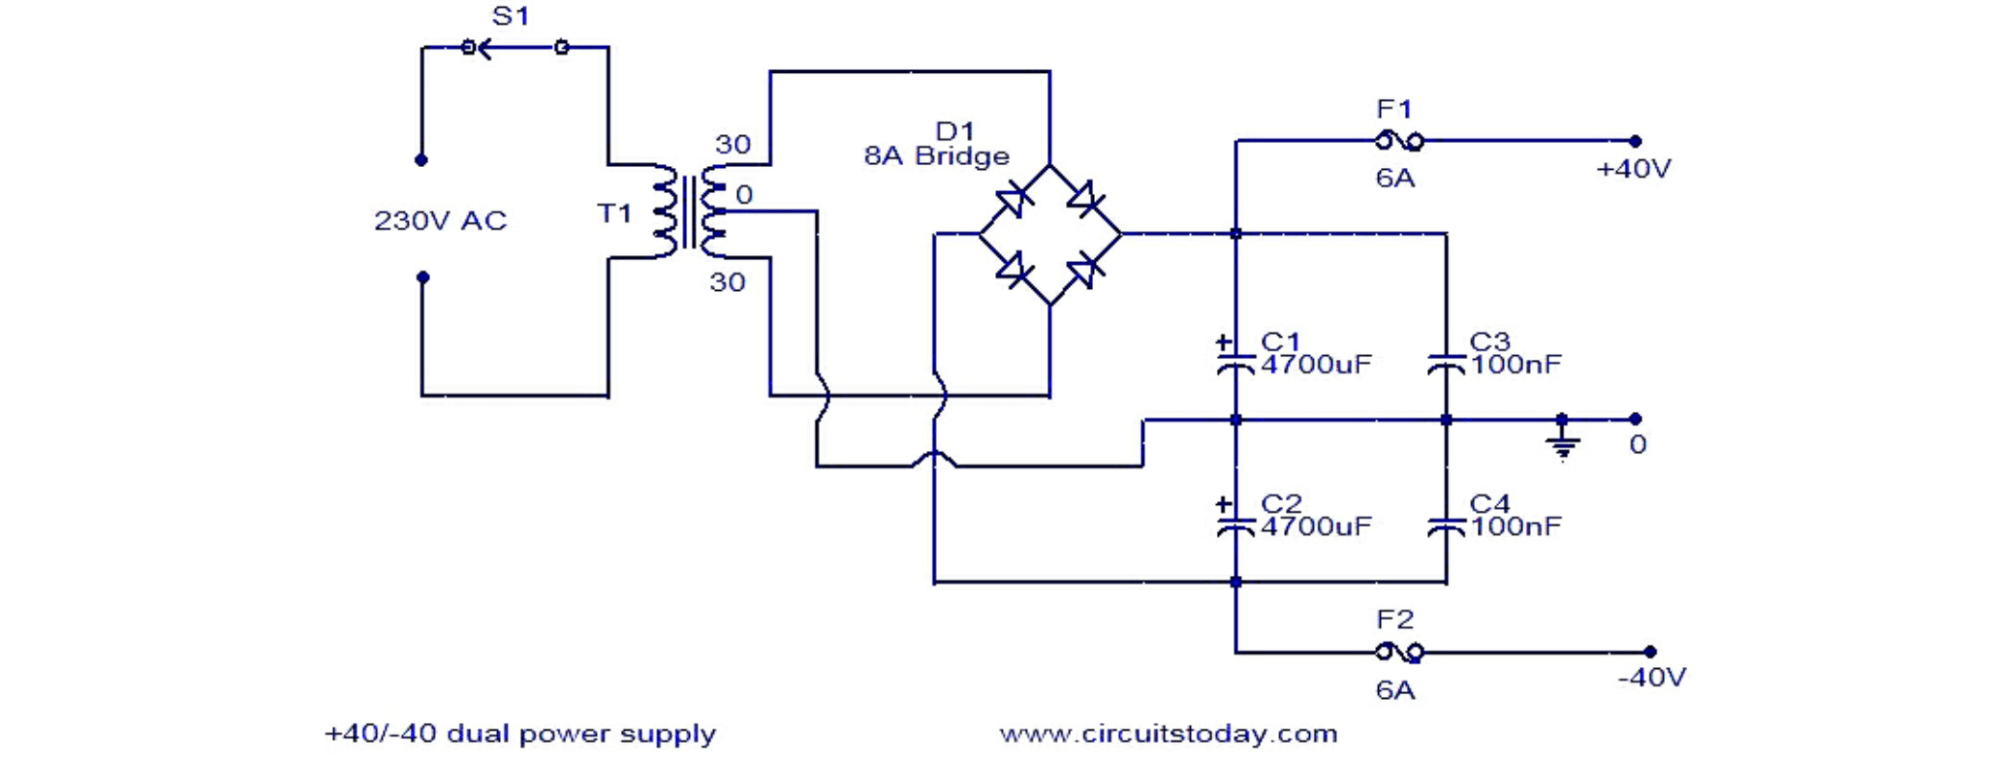 hight resolution of single supply circuit schematic diagram wiring diagram sheet low power amplifier single power supply circuit diagram